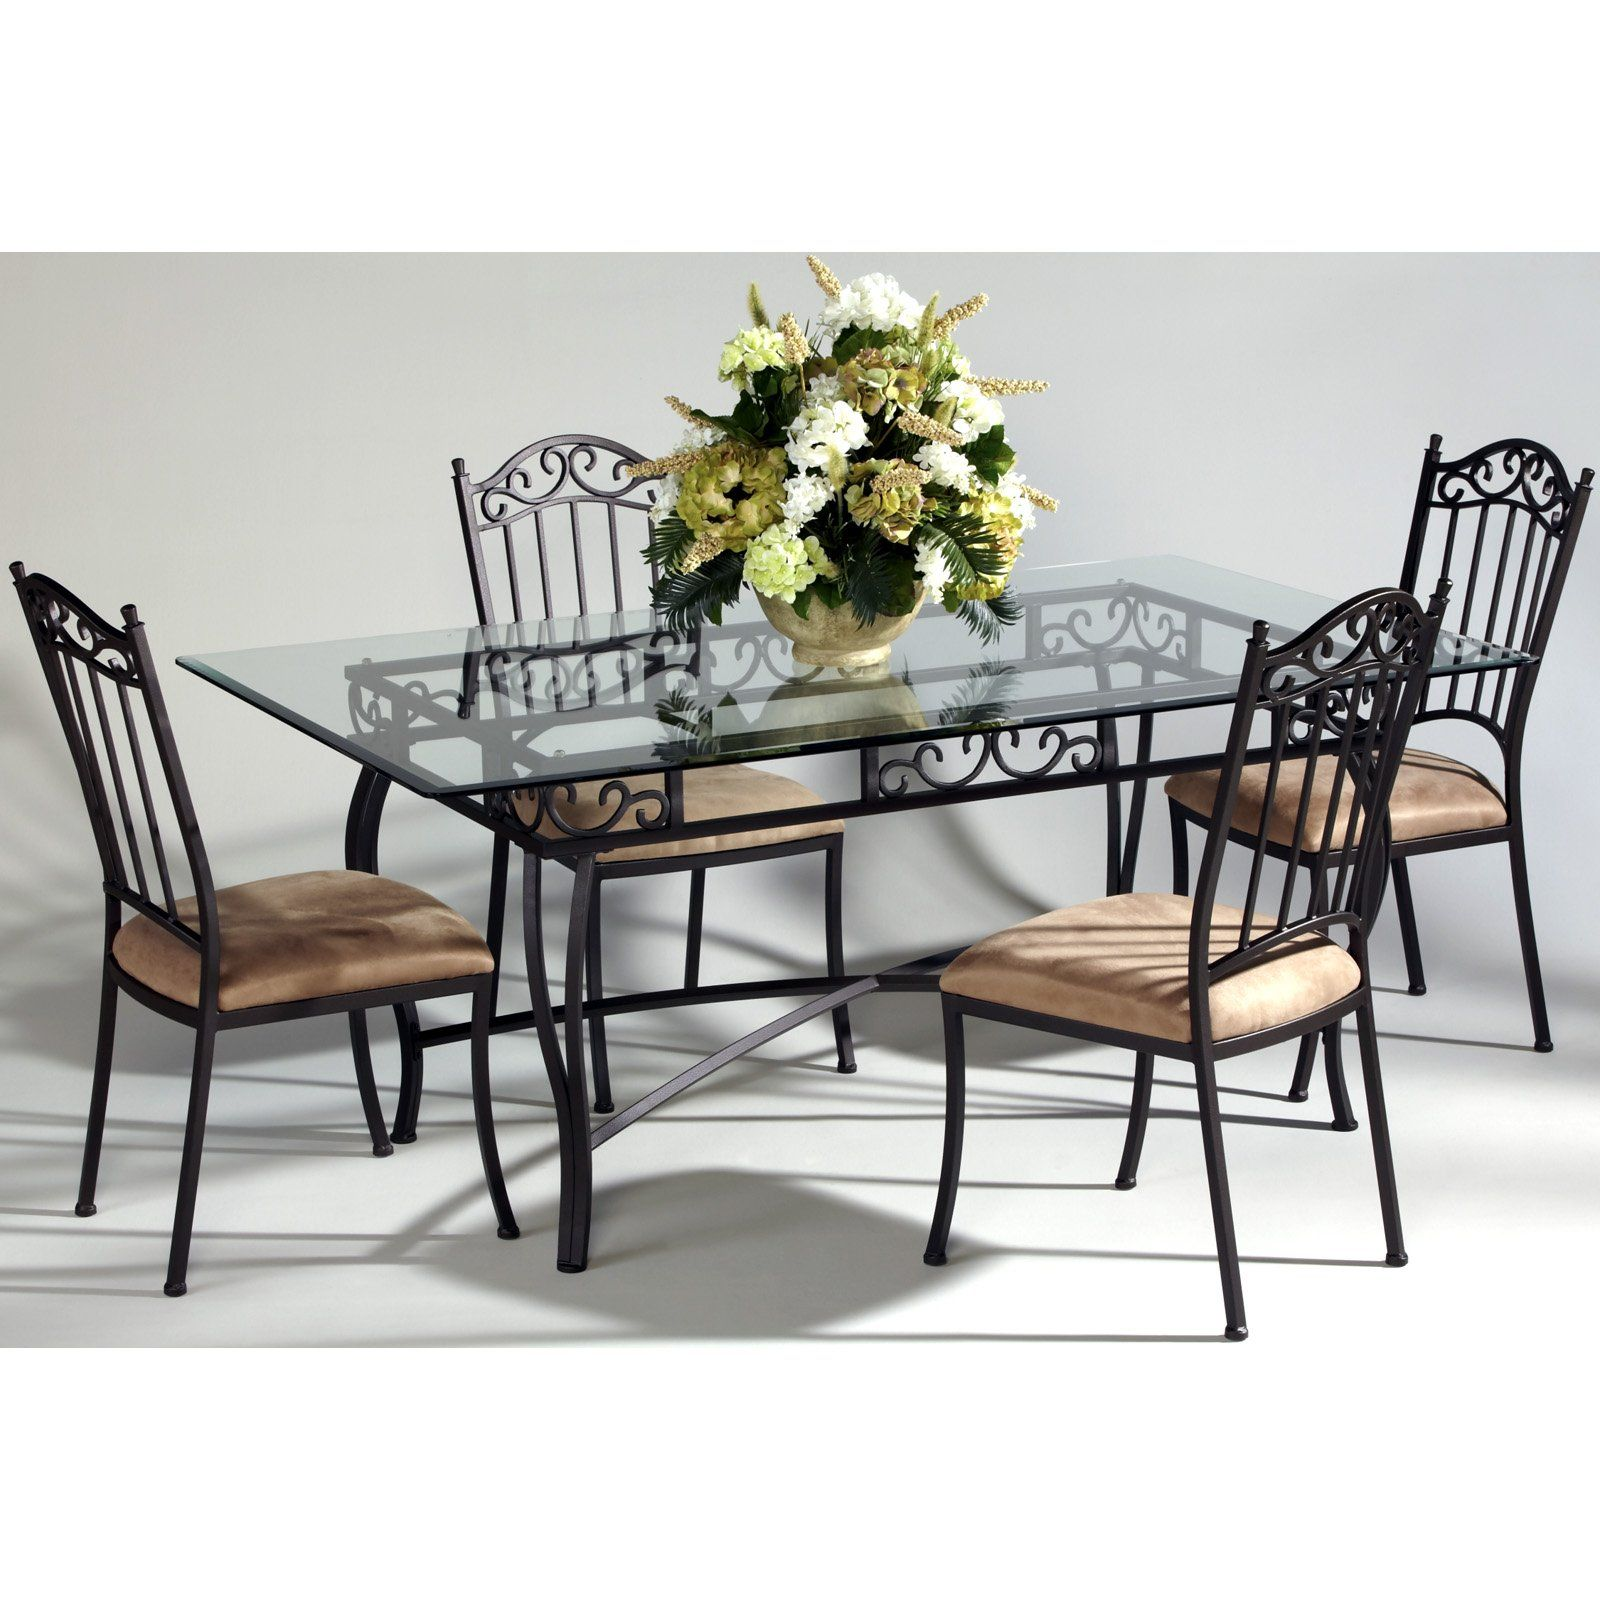 Rod Iron Table And Chairs Part - 48: Chintaly Bethel 5 Piece Rectangular Wrought Iron Dining Table Set $1123.32